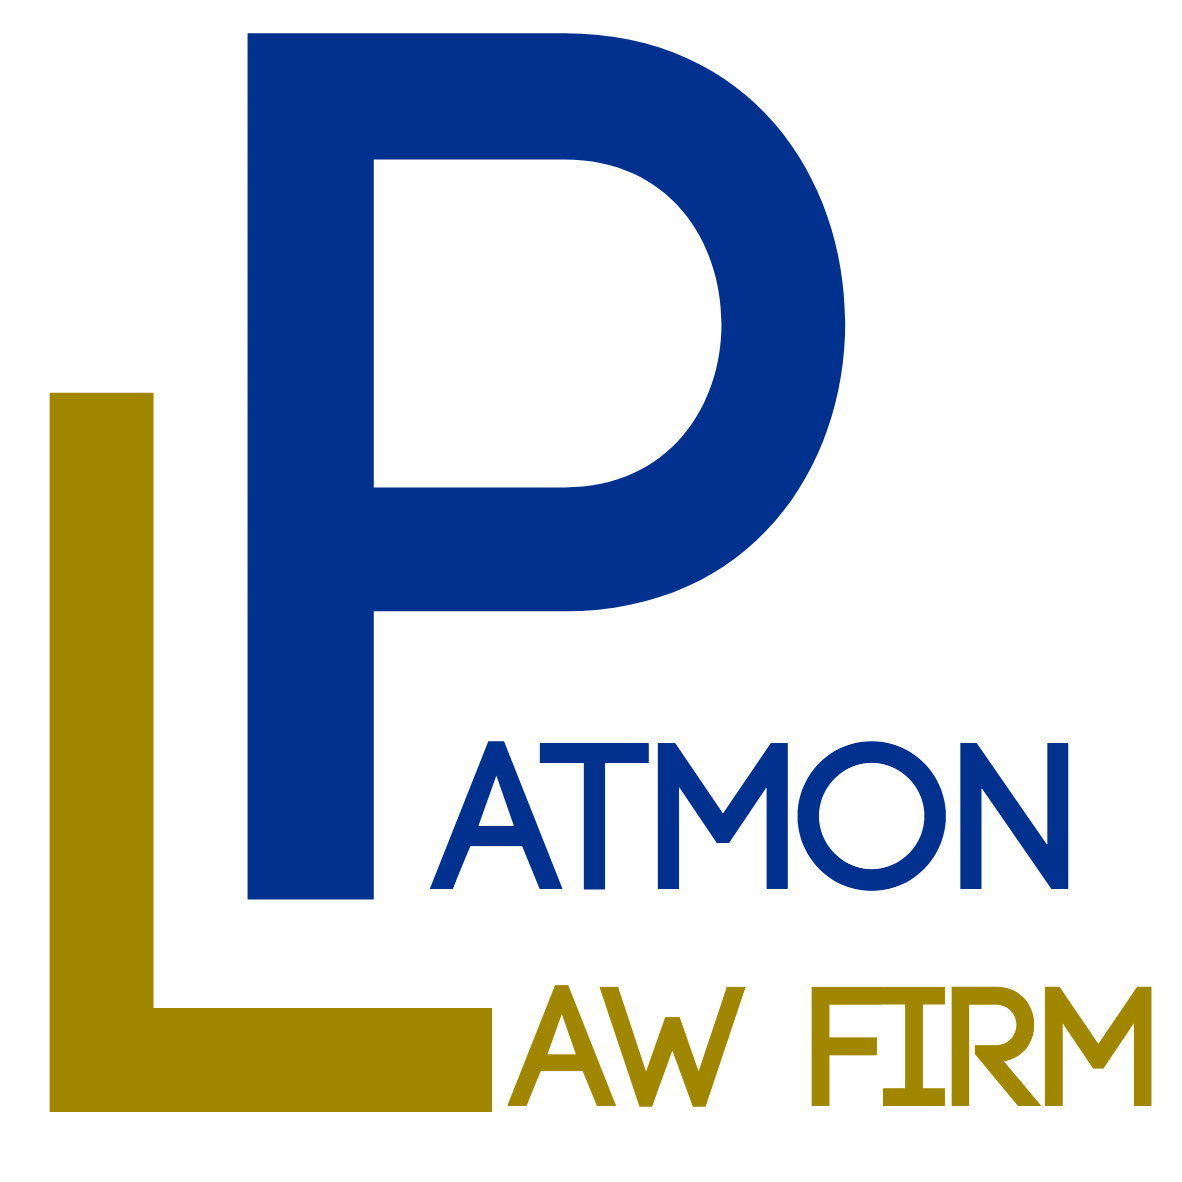 The Patmon Law Firm LLC